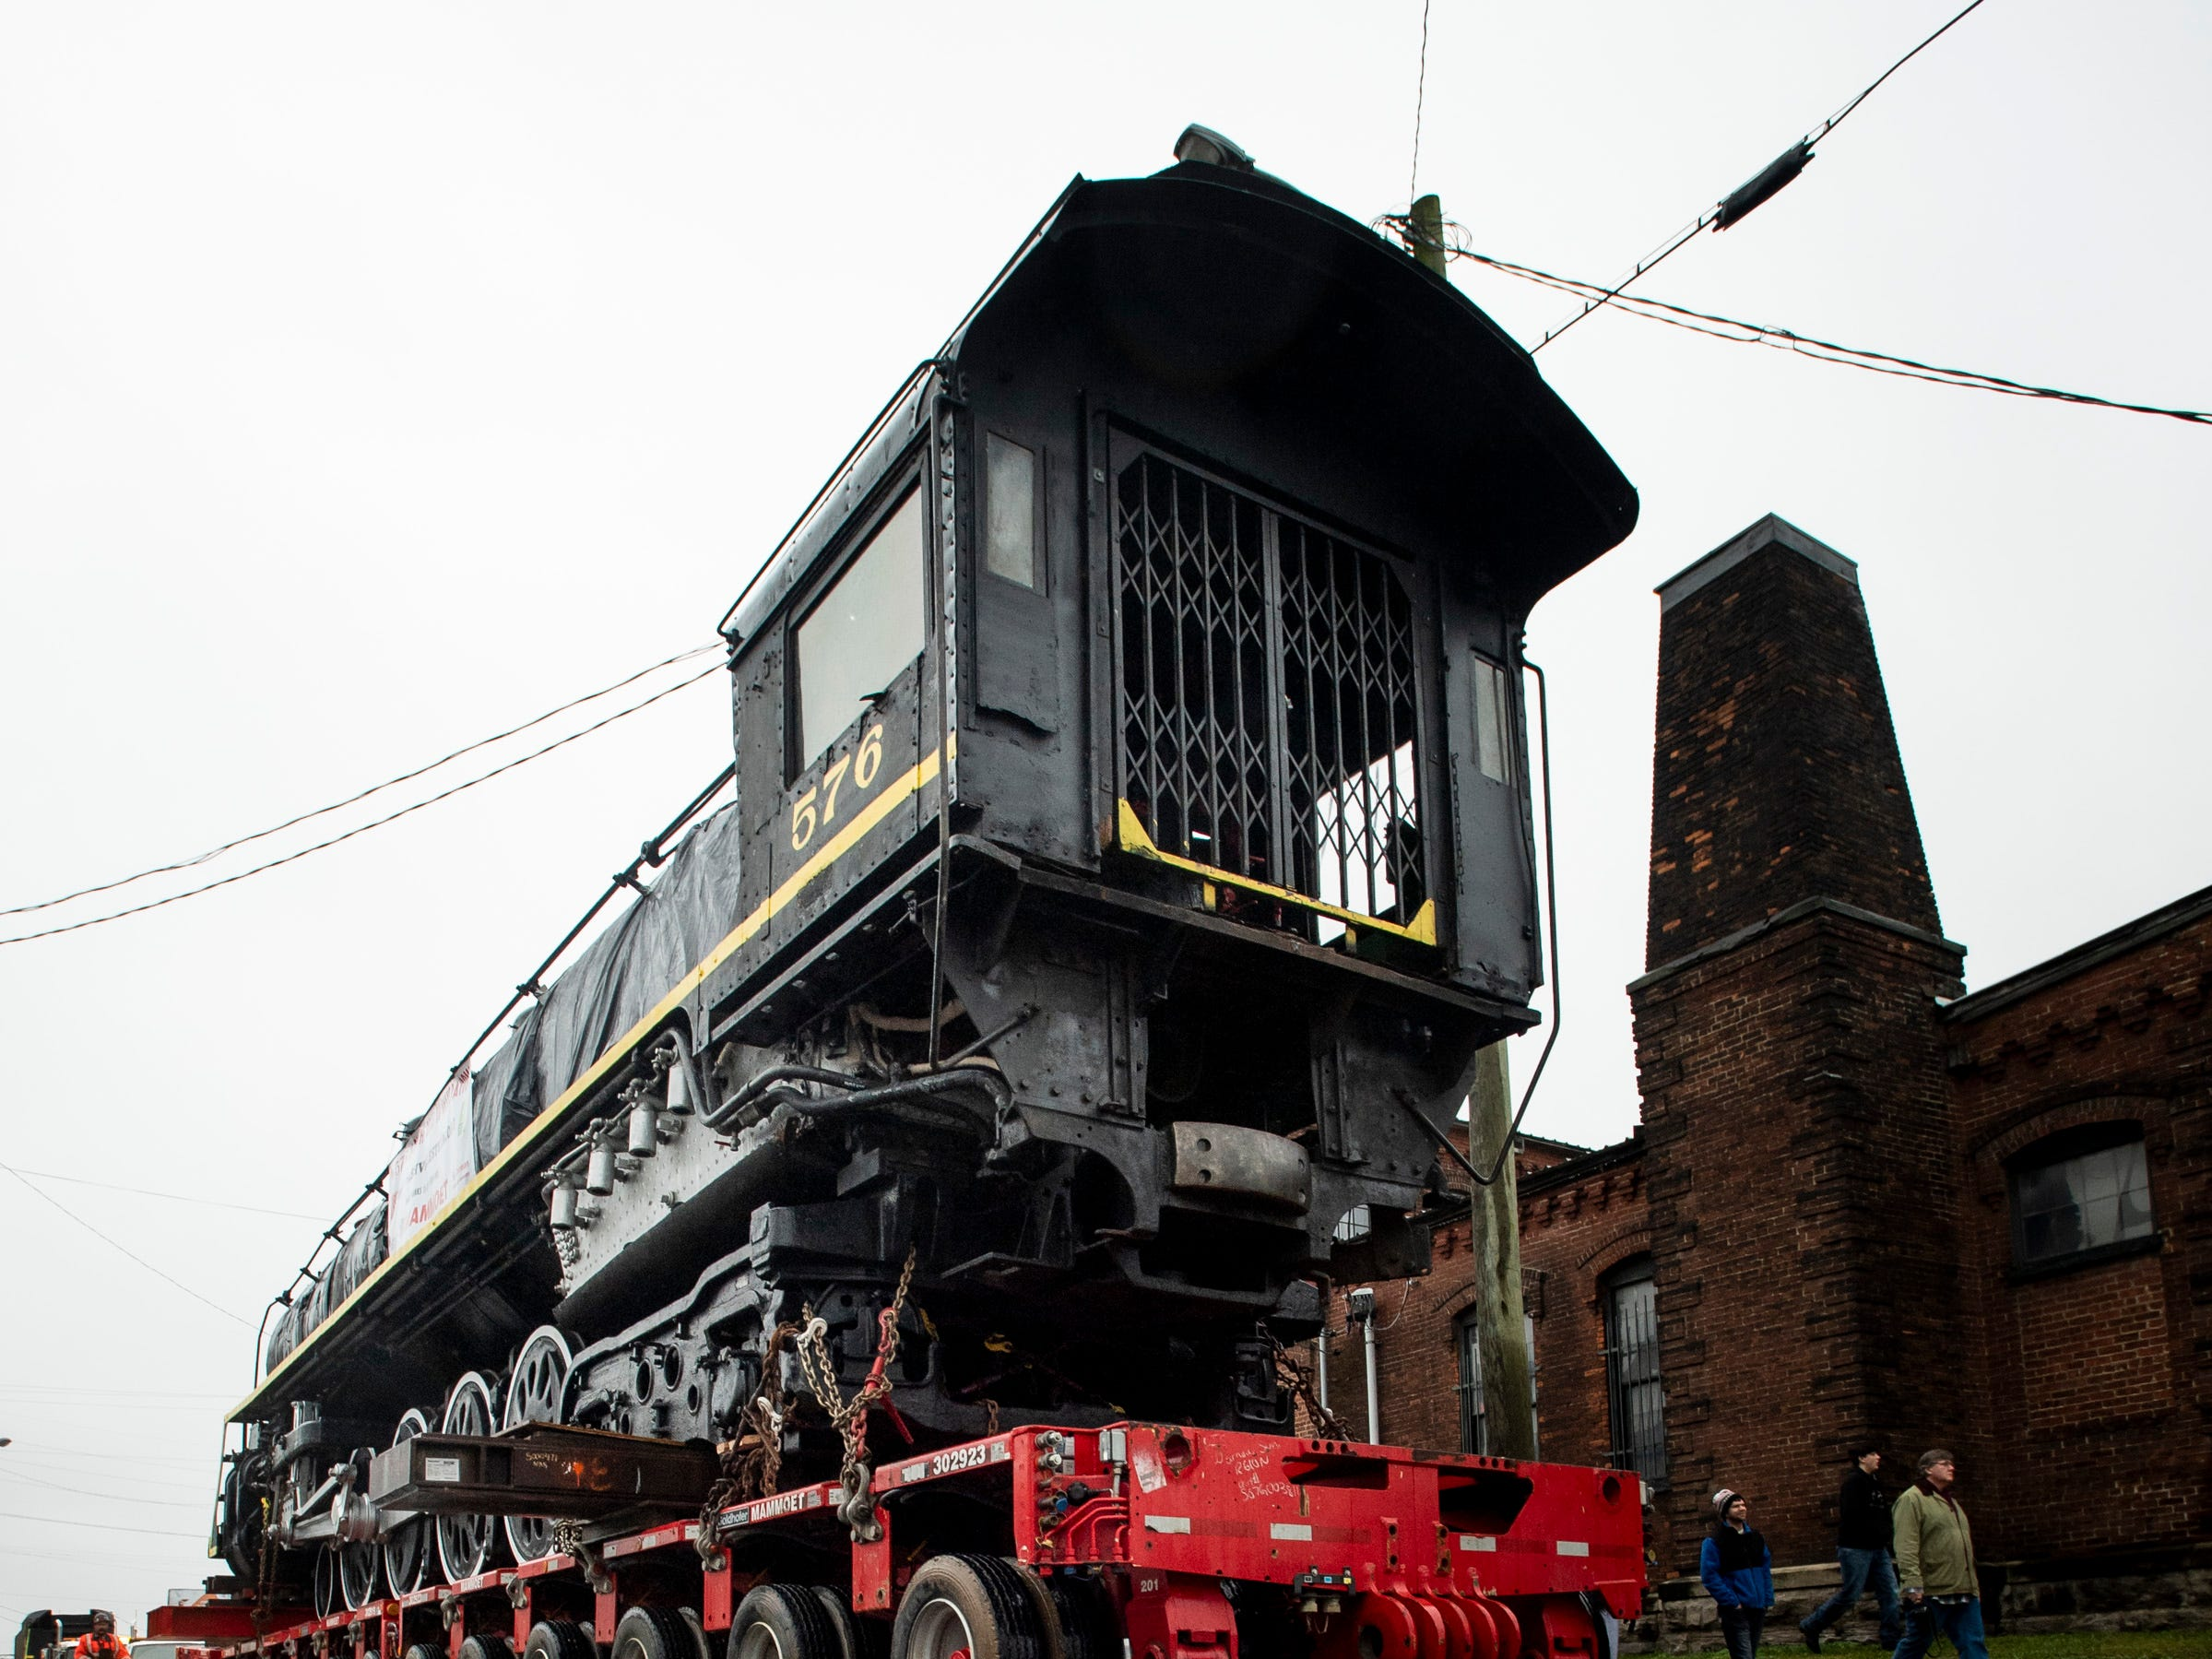 Former Nashville, Chattanooga & St. Louis Railway steam locomotive No. 576 is moved down 12th Ave. North in Nashville, Tenn., Sunday, Jan. 13, 2019. The train, which will be restored to working condition over approximately four years, has been on display in Centennial Park since 1953.